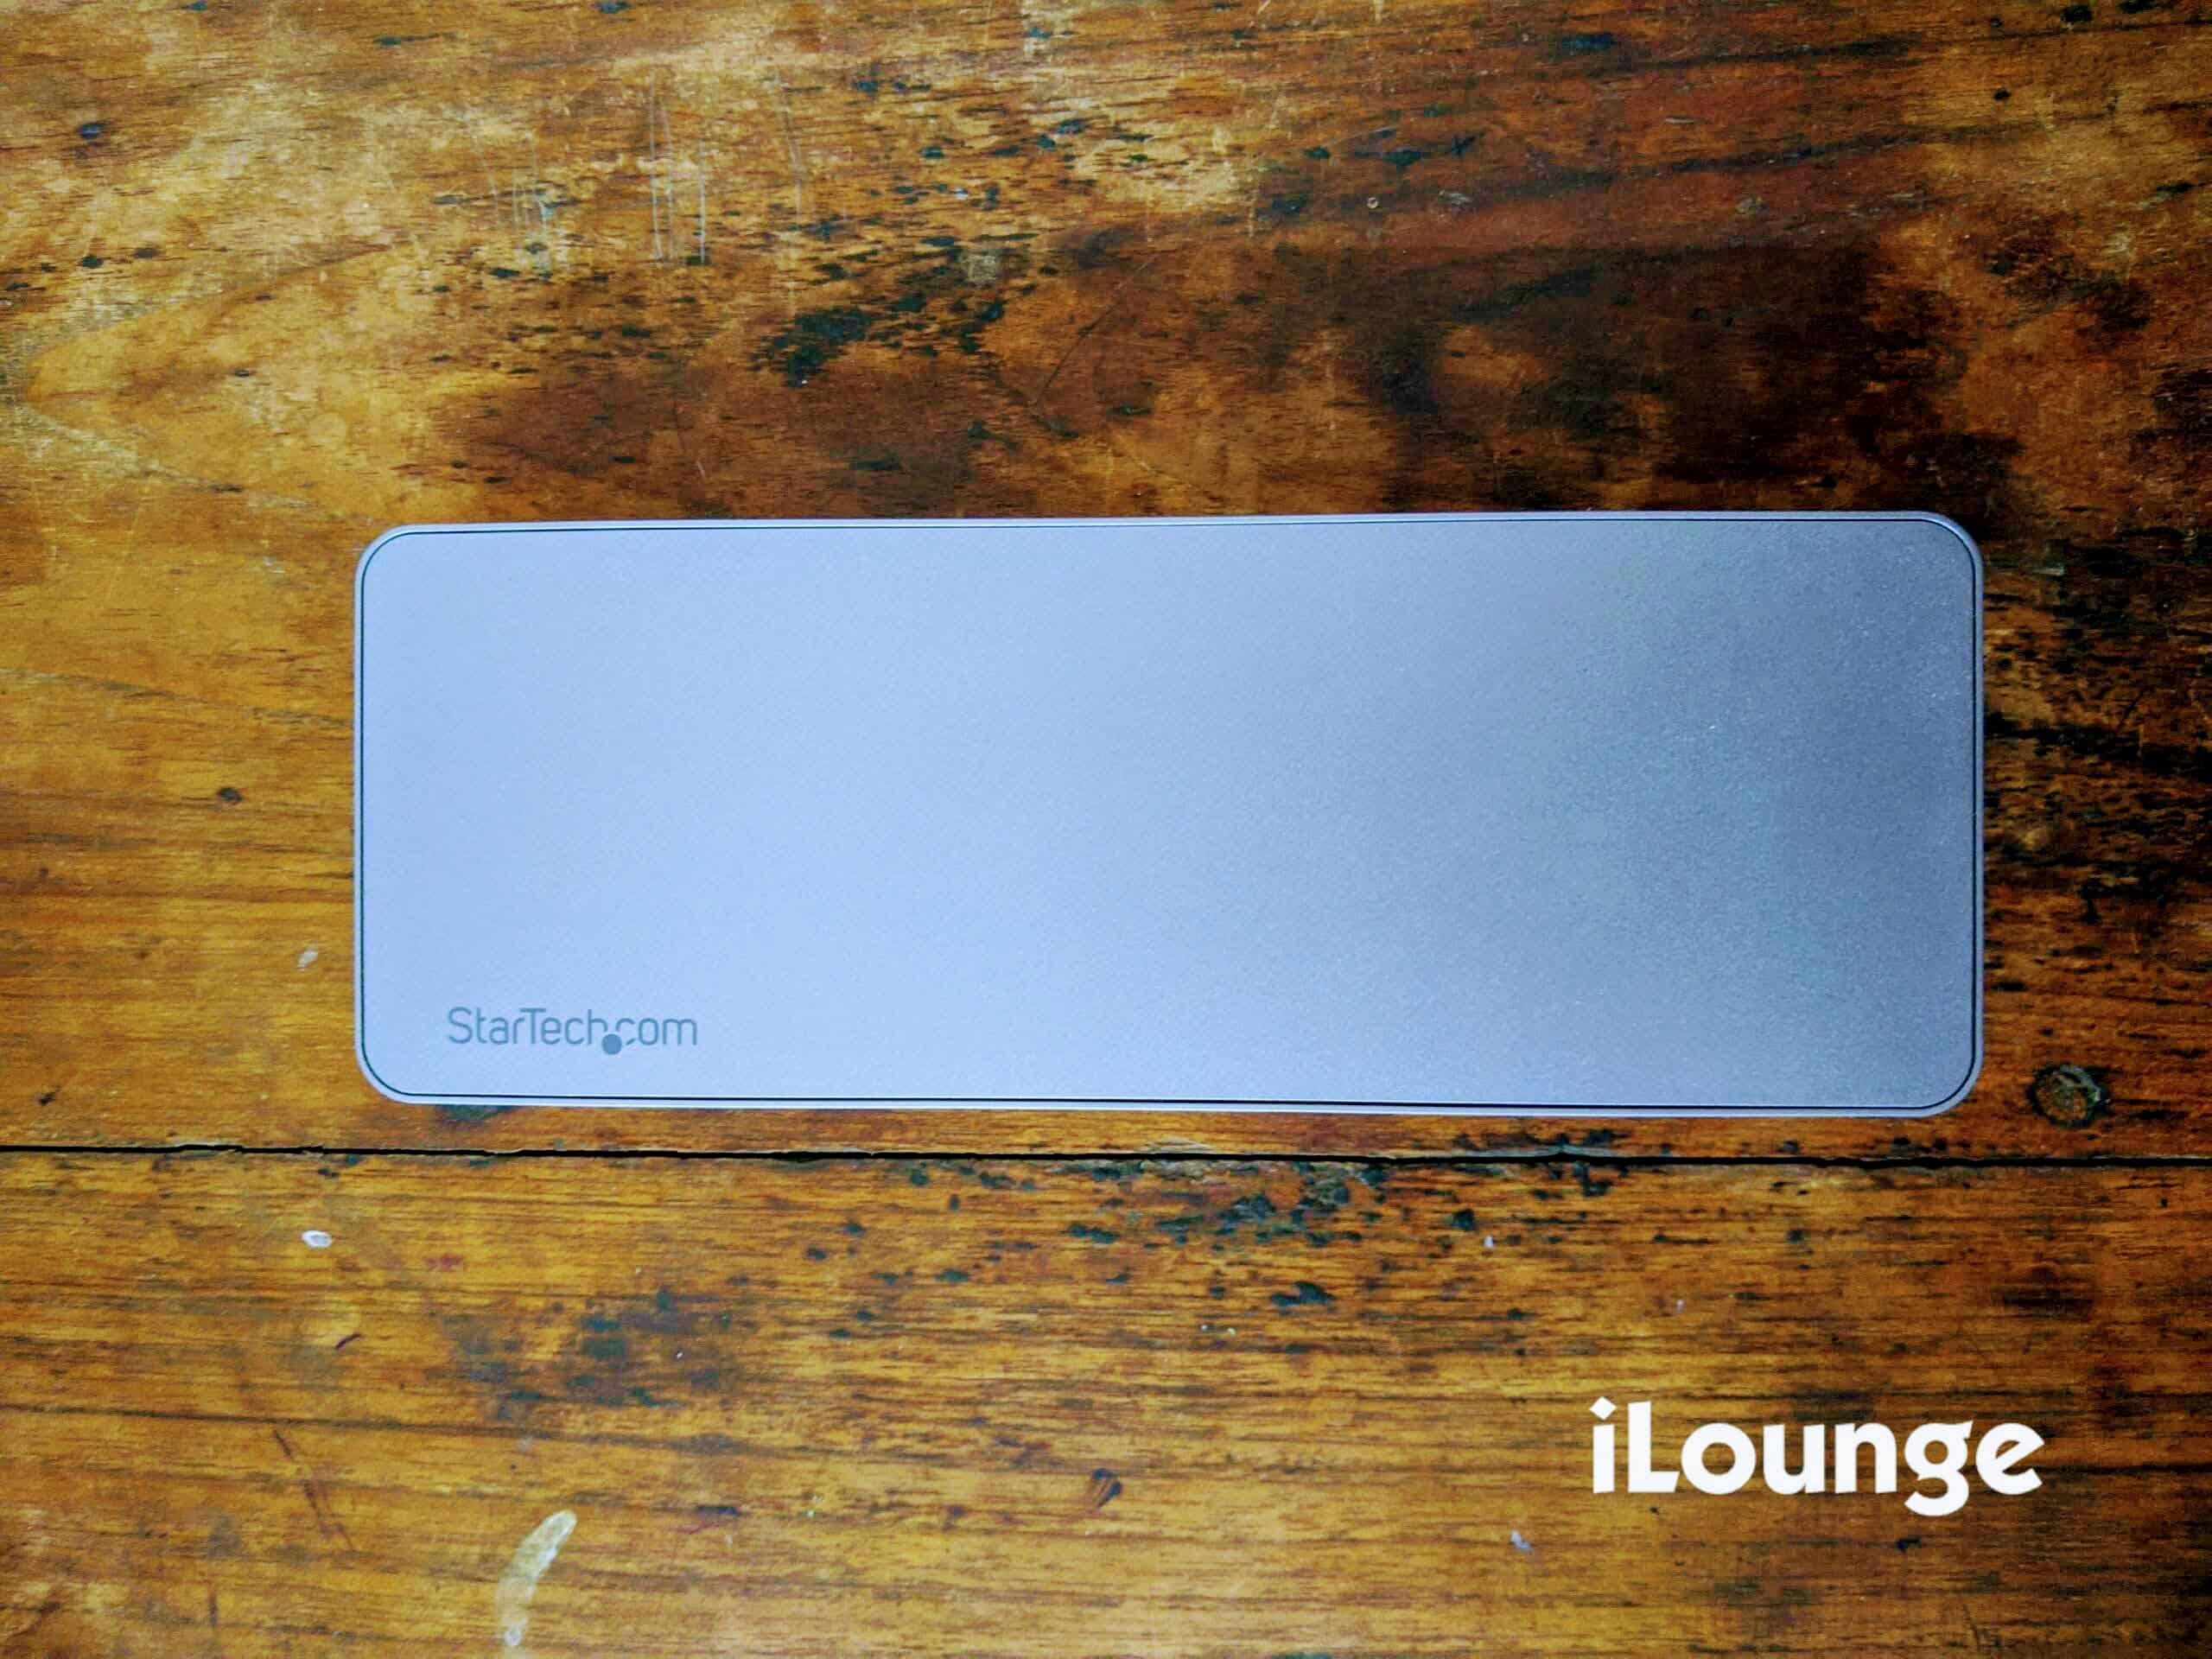 StarTech.com Thunderbolt 3 Dock Review